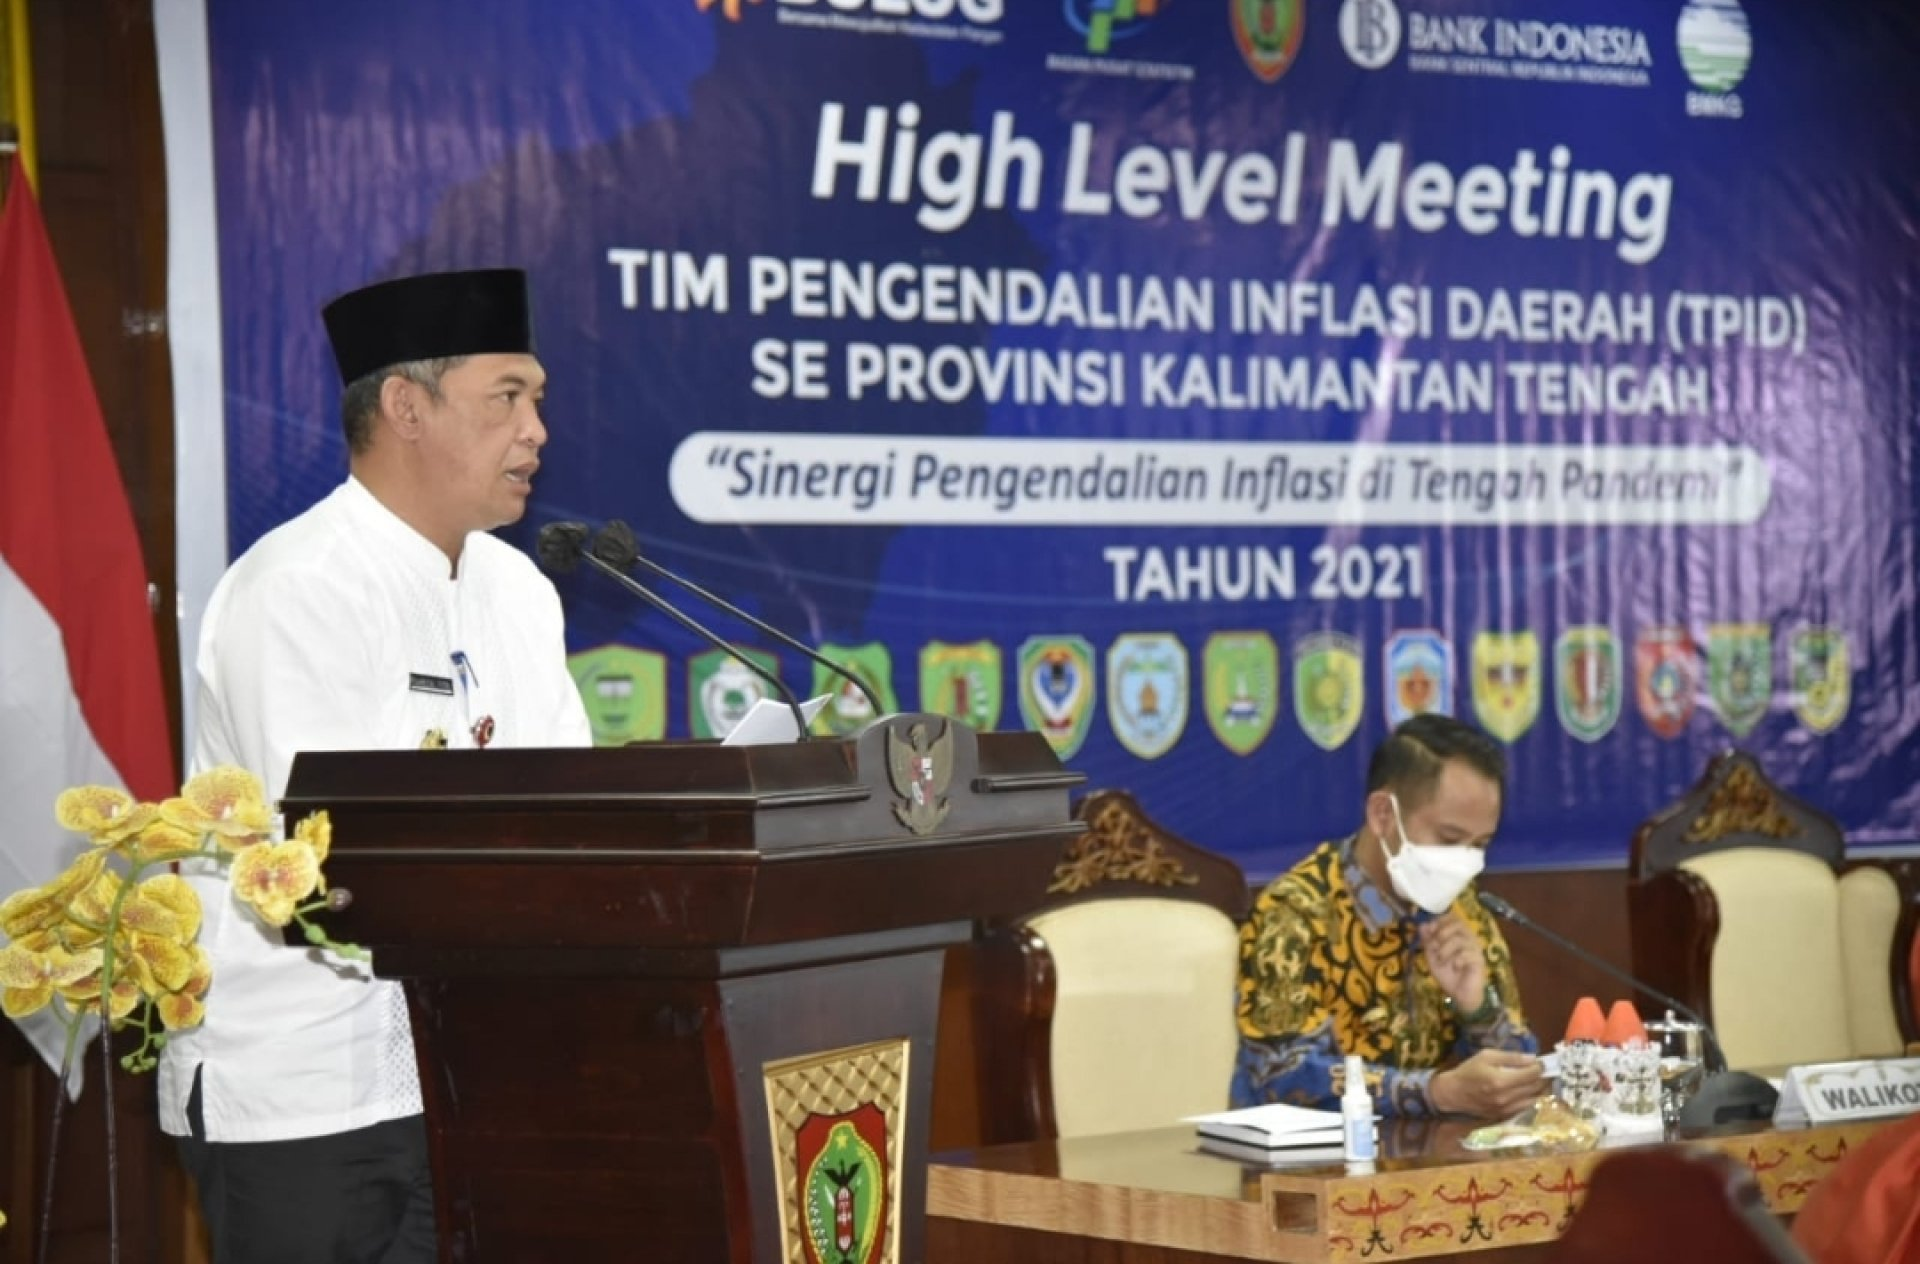 Perkuat Sinergi Pengendalian Inflasi, Rakor High Level Meeting TPID Se-Kalteng Digelar